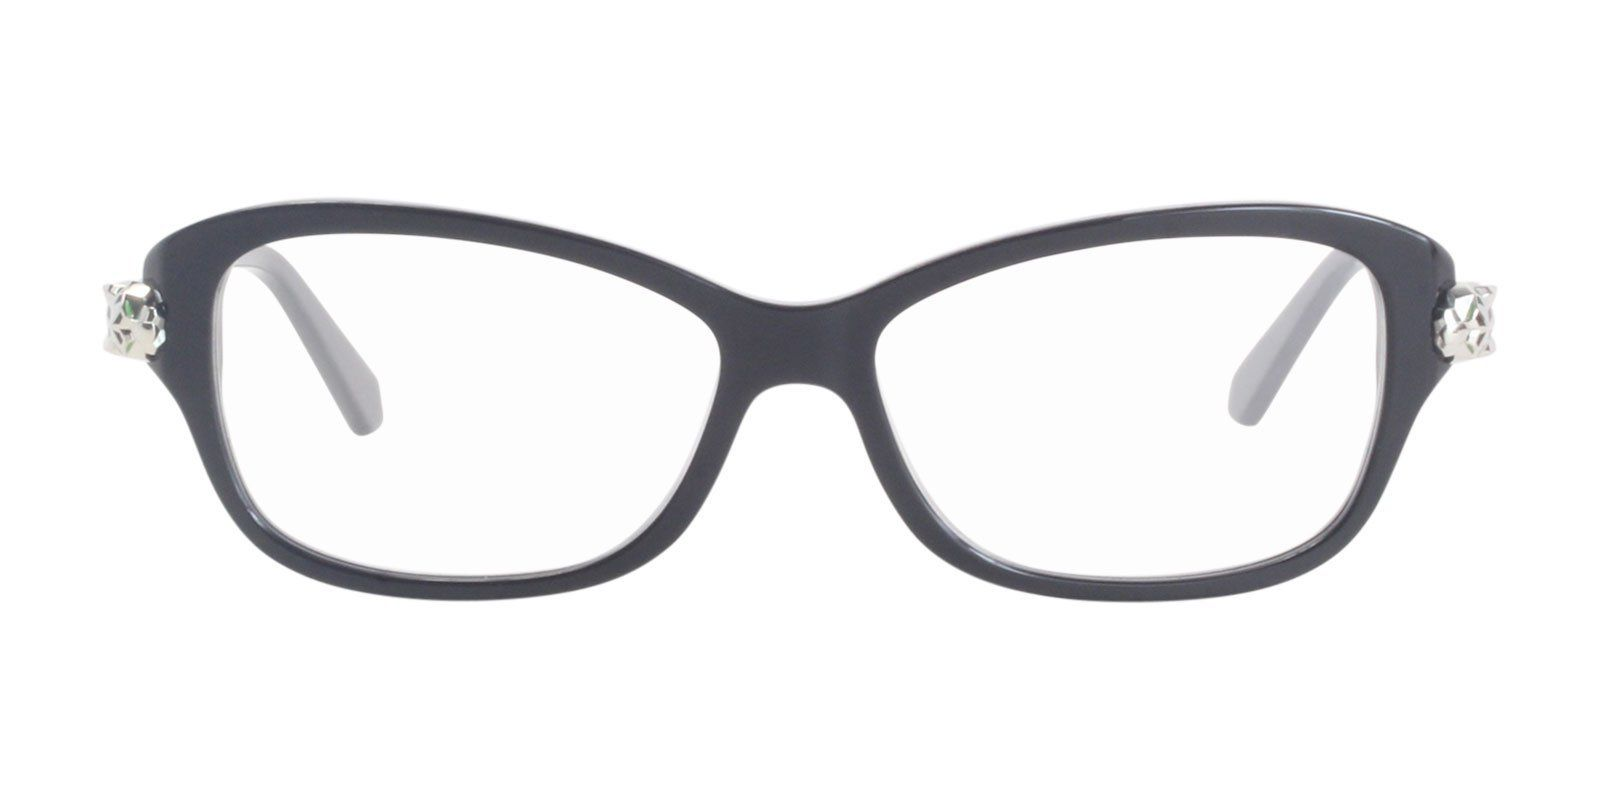 a6bc71901ee2 Cartier - Panthere Wild EYE00023 Eyeglasses